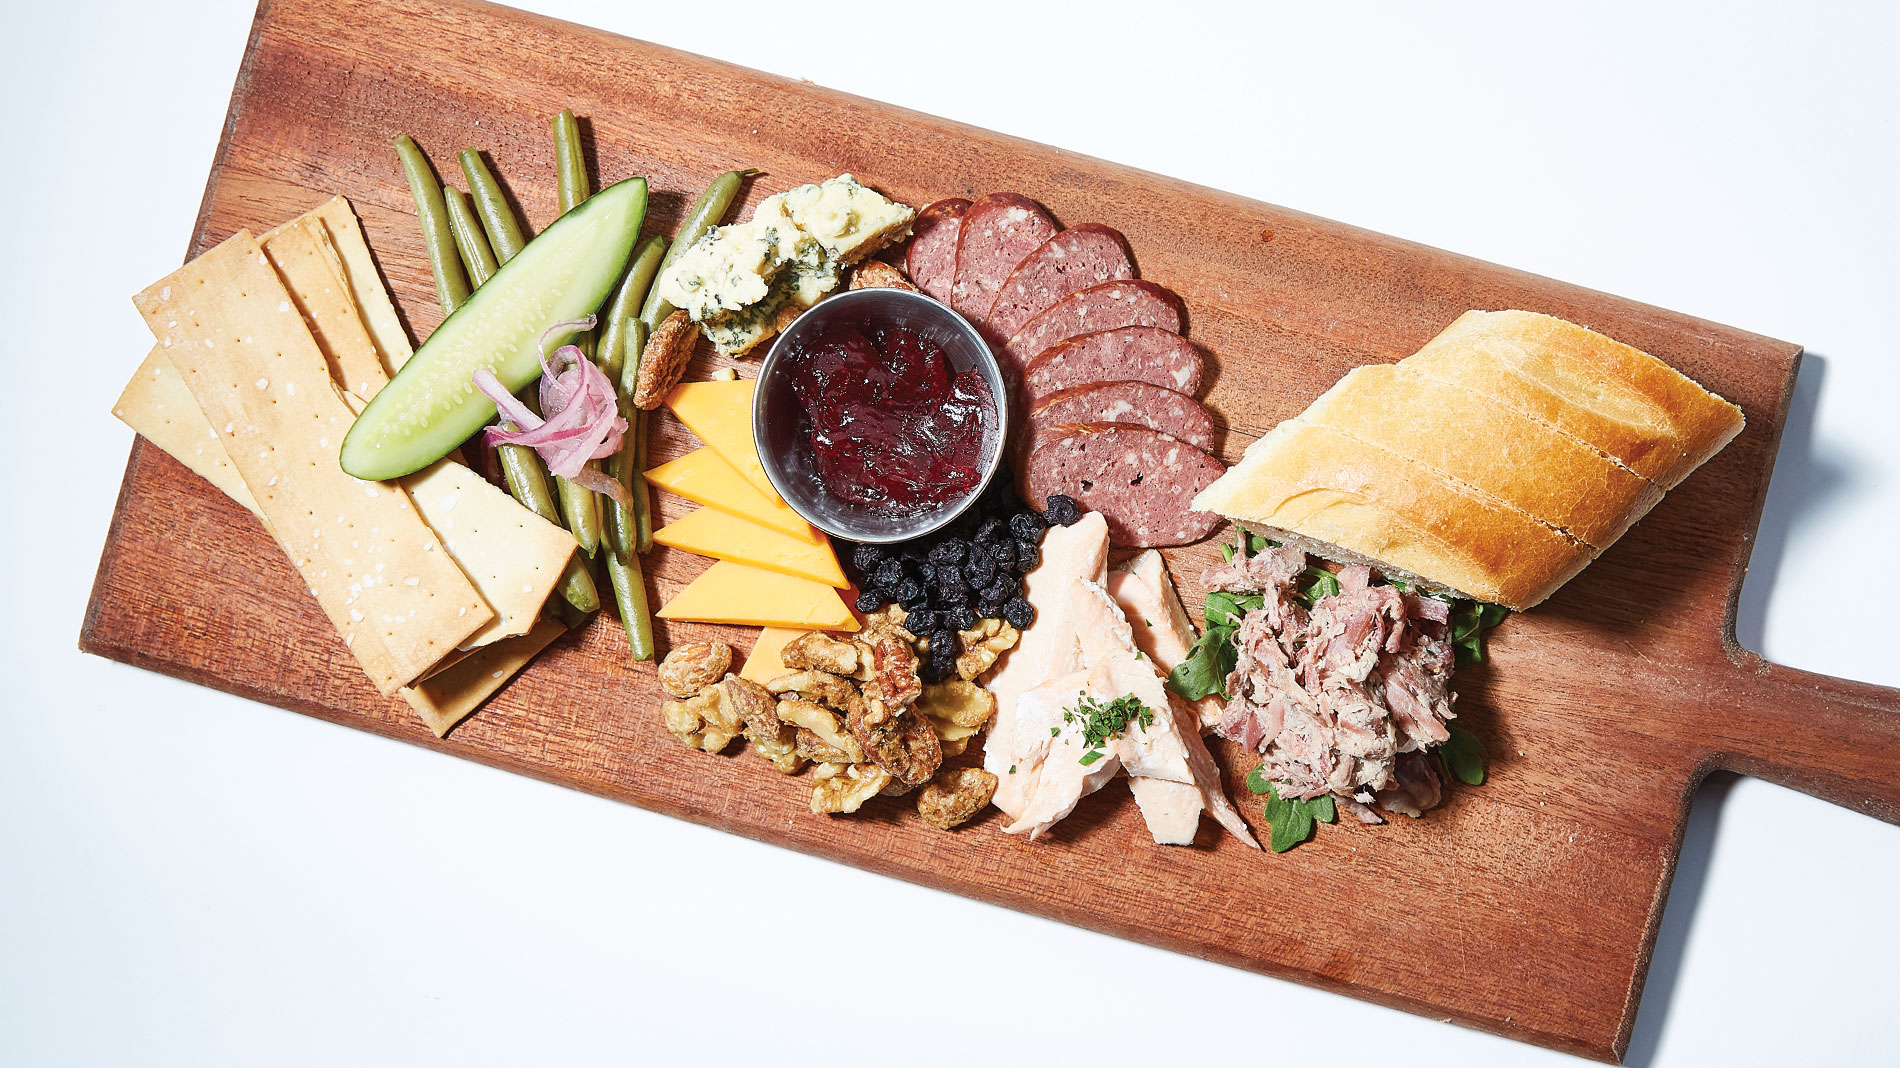 a large wooden plank filled with meats and cheese